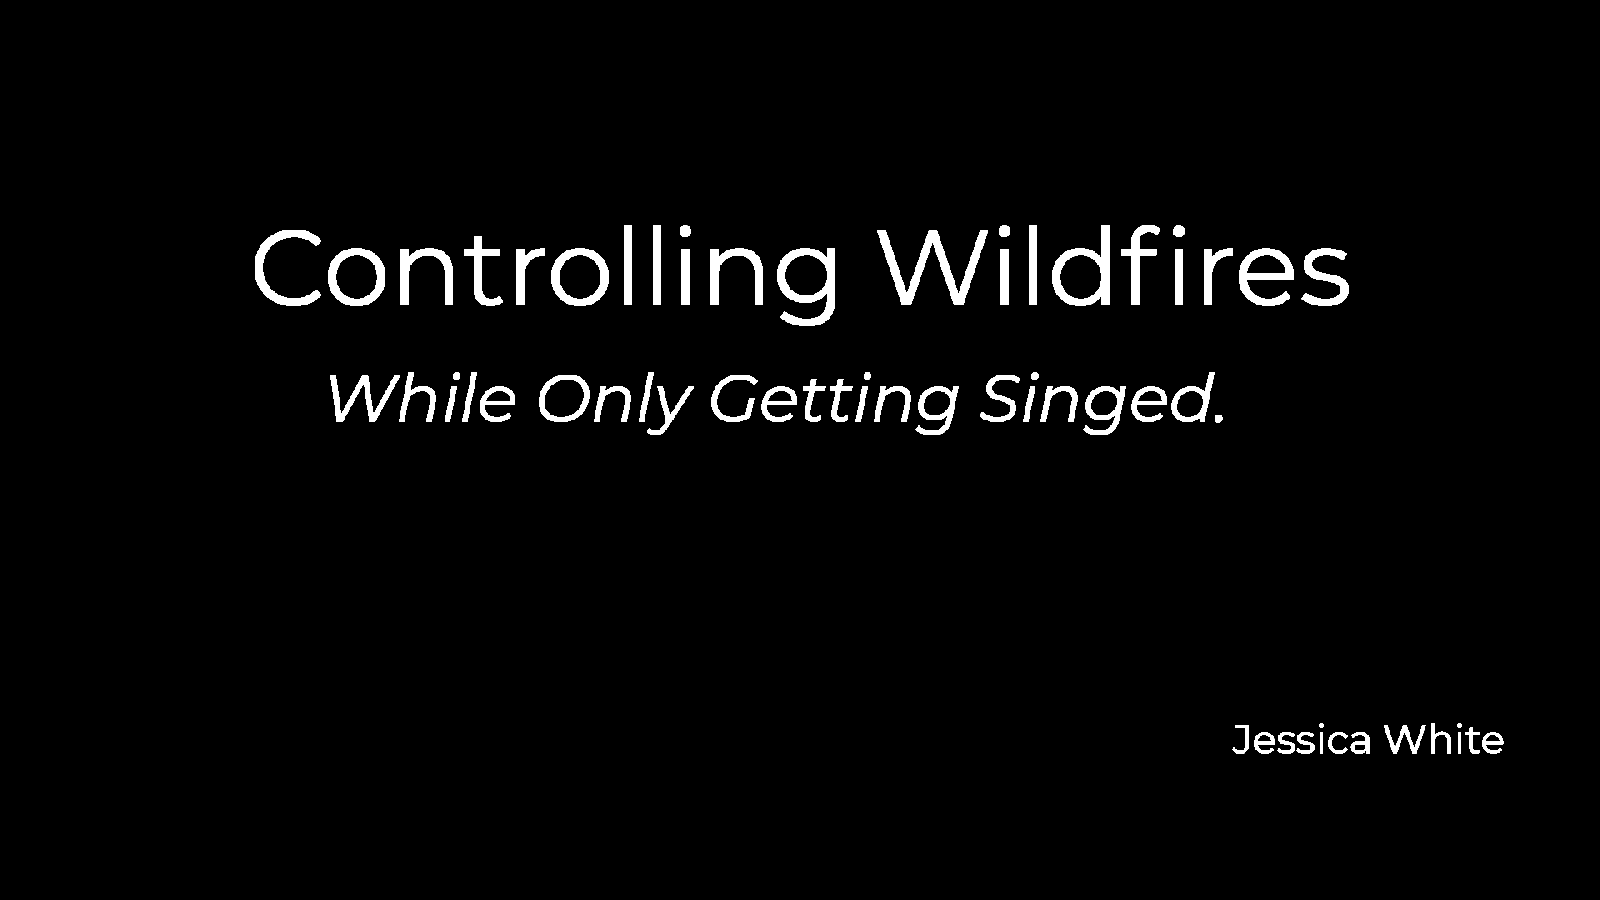 Controlling Wildfires (While Only Getting Singed).